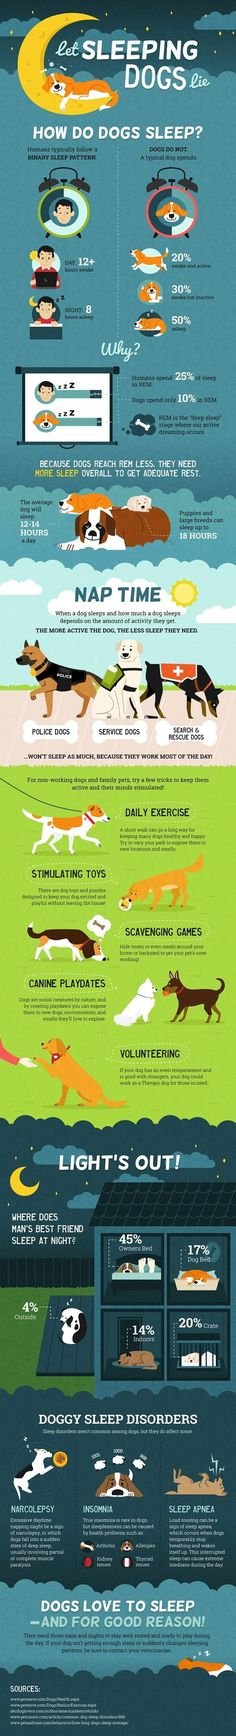 Dog Infographic: Let Sleeping Dogs Lie http://www.dailydogtag.com/lifestyle/let-sleeping-dogs-lie-but-how-much-sleep-do-dogs-need/?utm_content=buffer2d1b5&utm_medium=social&utm_source=pinterest.com&utm_campaign=buffer#_a5y_p=4157036::